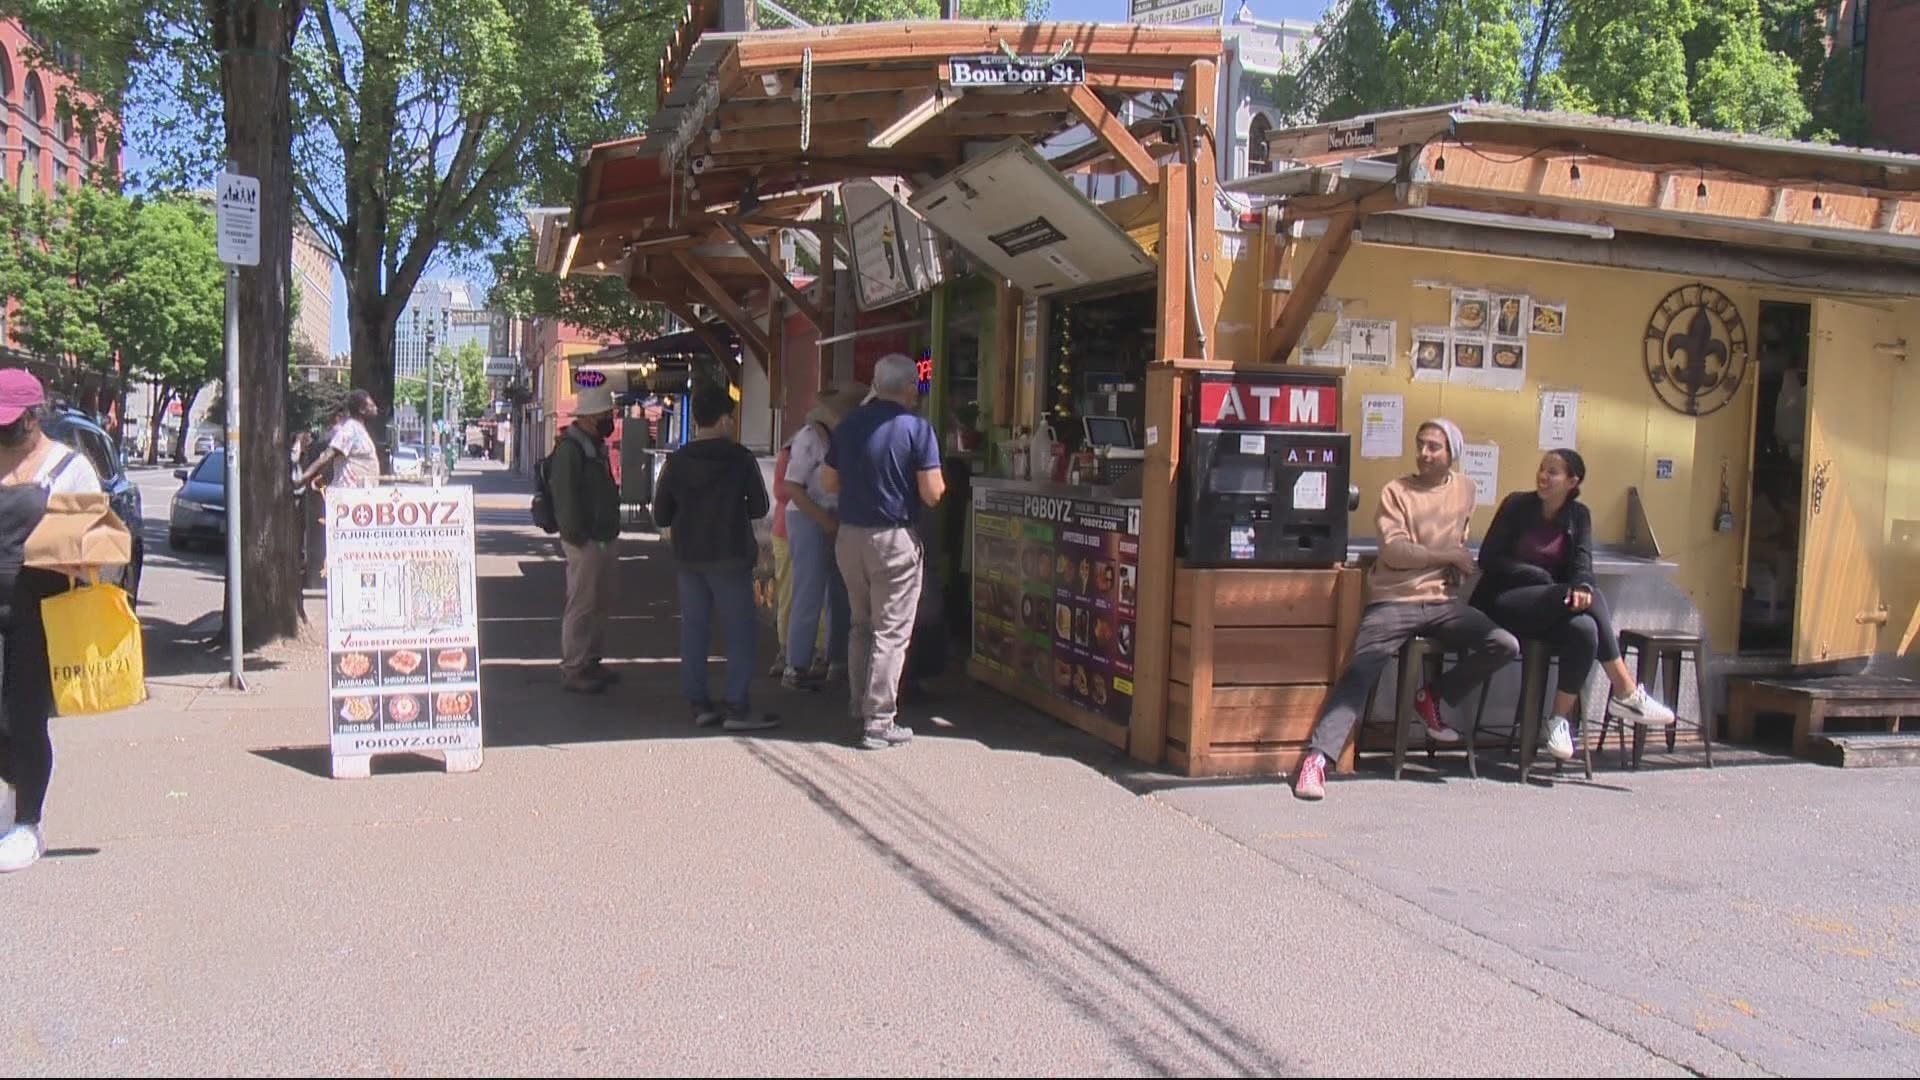 Heat wave causes Portland closures and event cancellations | kgw.com